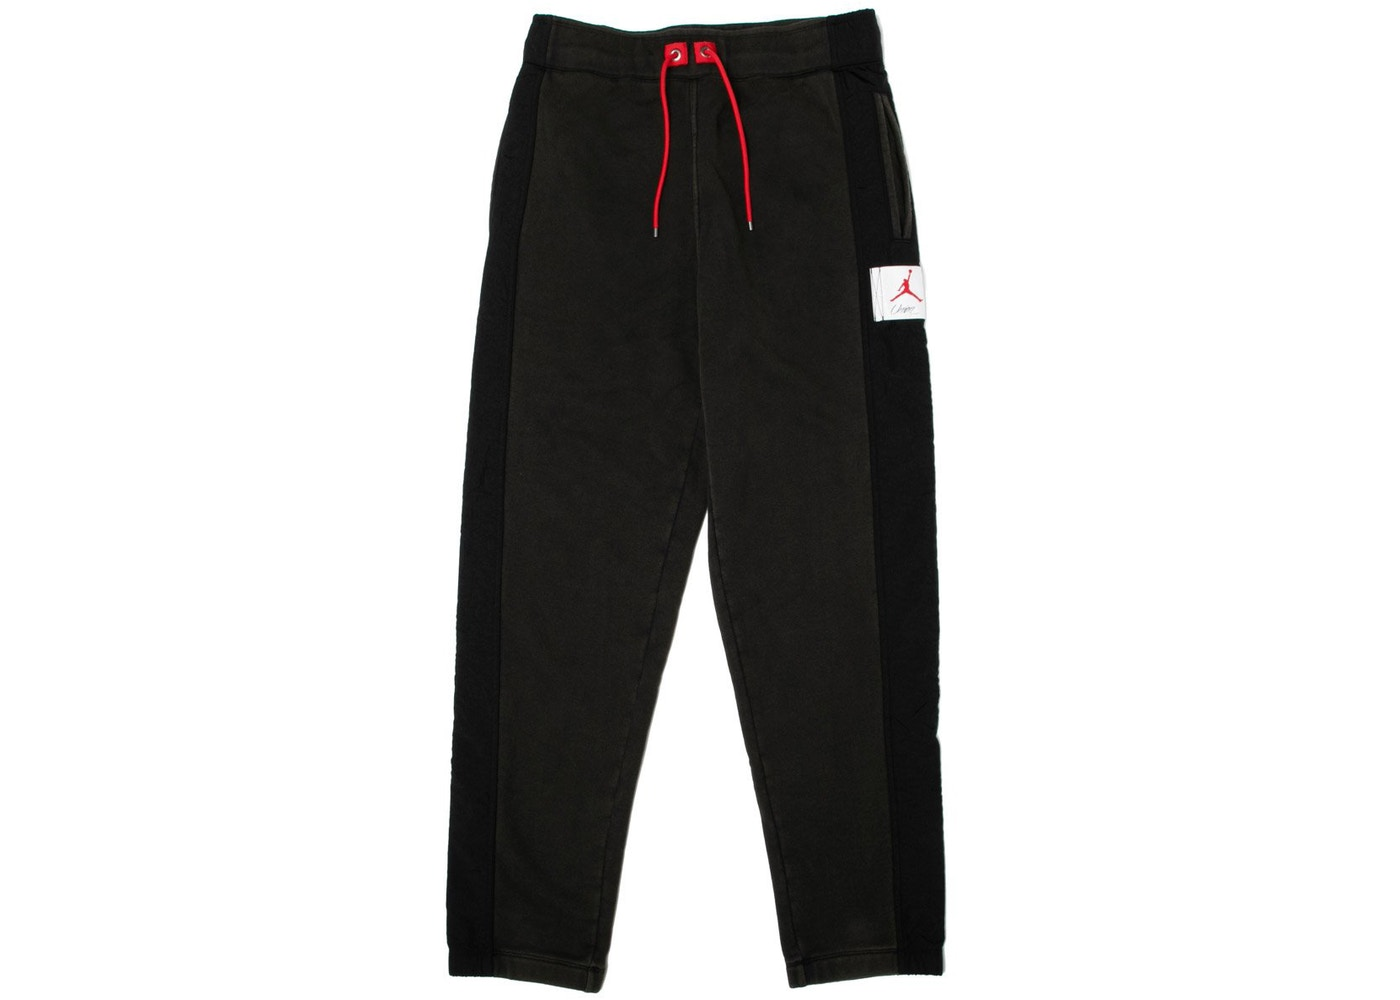 2543e6ed6d8 Jordan x Union NRG AJ Flight Pants Black - FW18